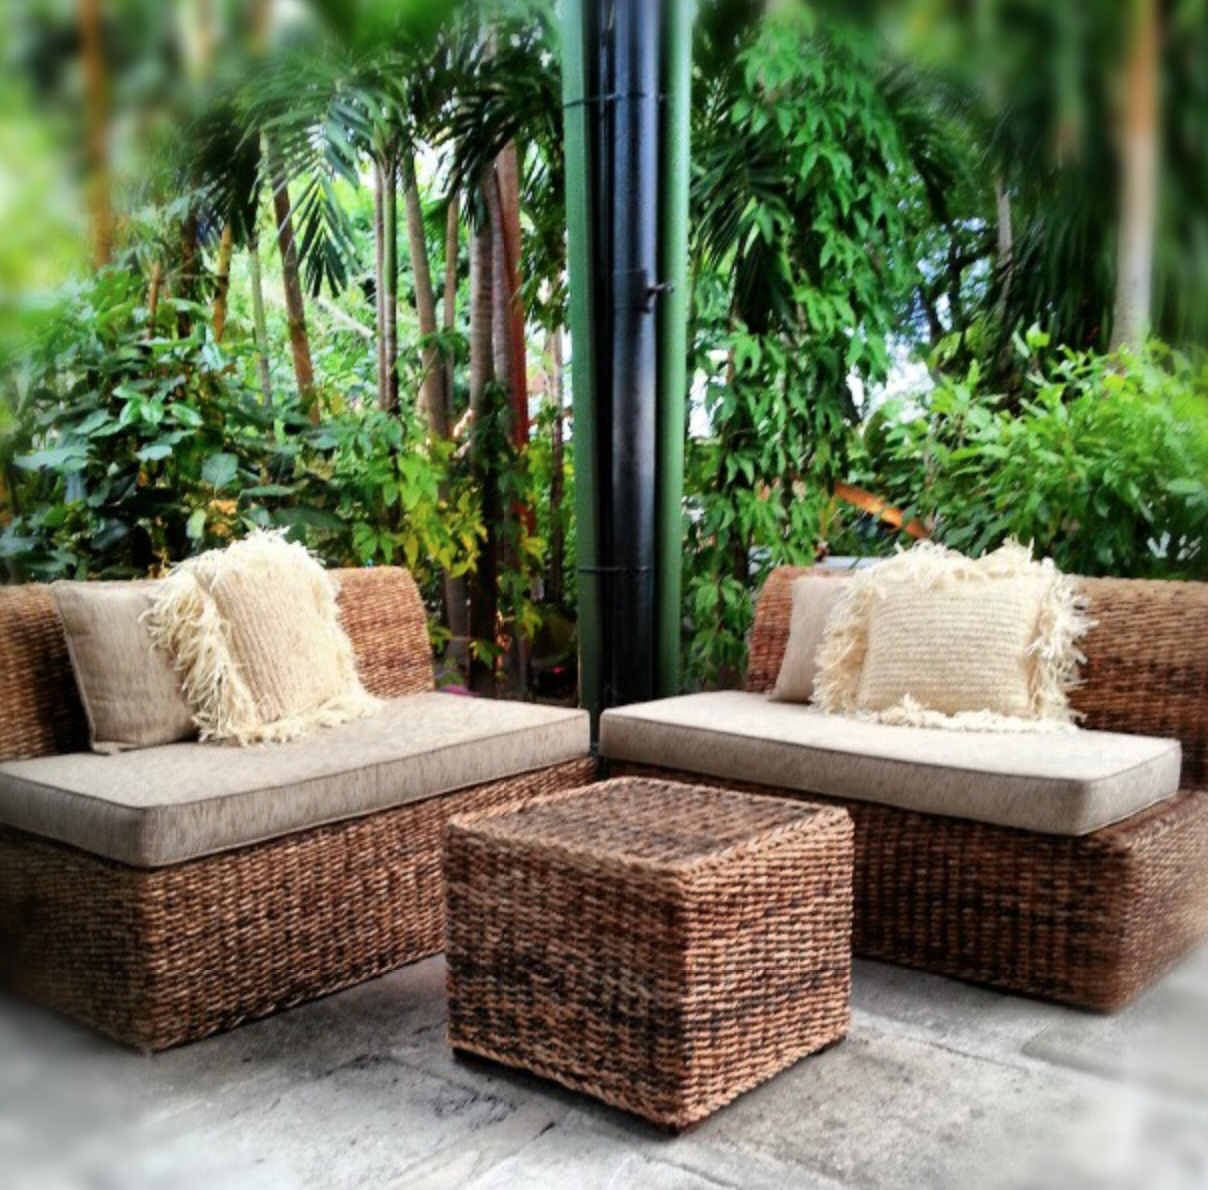 Sugar cane lounge banana leaf furniture and grass pillows florals sugar cane lounge banana leaf furniture and grass pillows florals and decor avant gardens miami memorable details pinterest order flowers and geotapseo Image collections